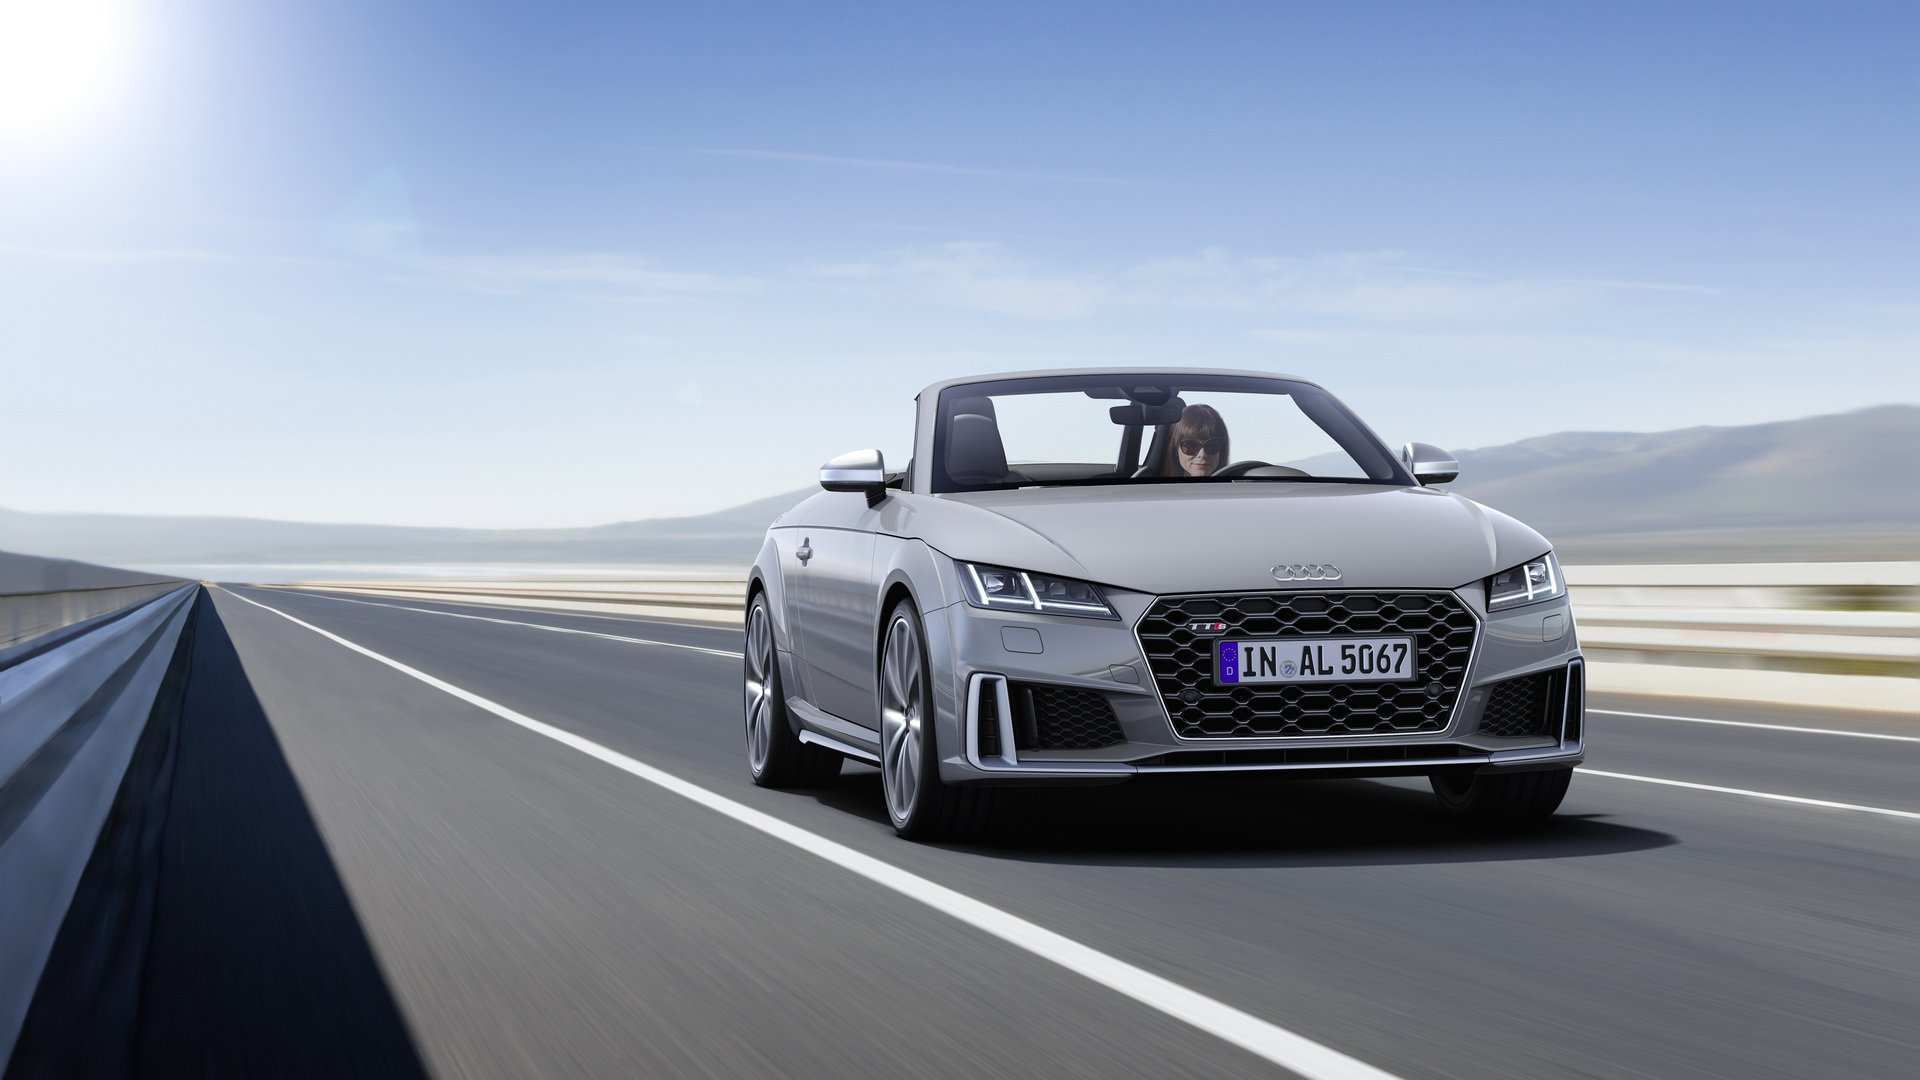 88 Great Audi Tt Convertible 2020 Redesign with Audi Tt Convertible 2020